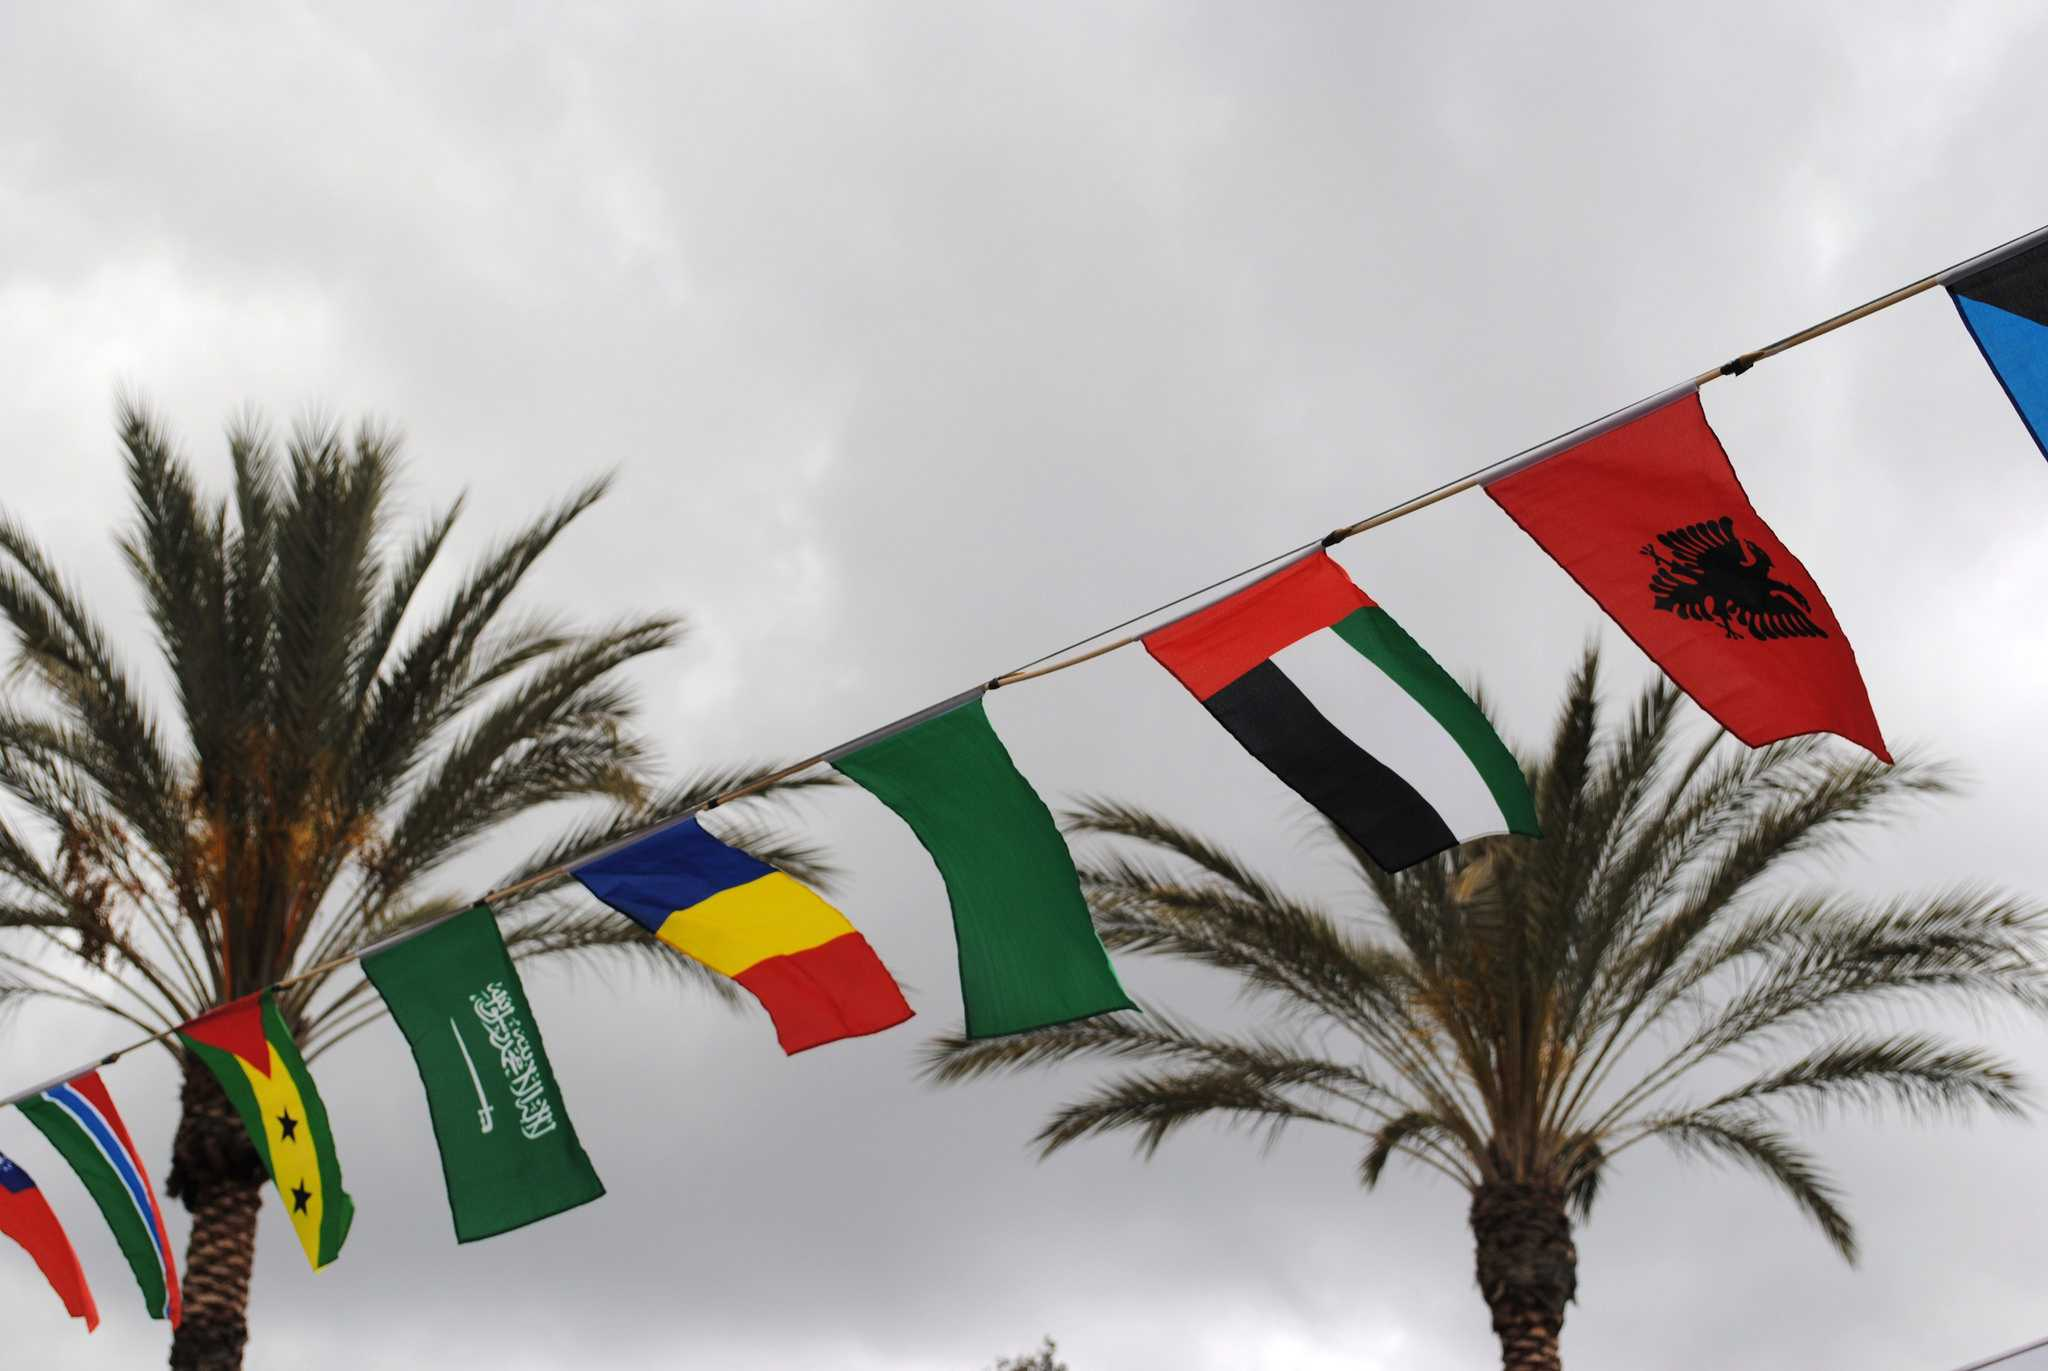 different countries flags blowing in the wind